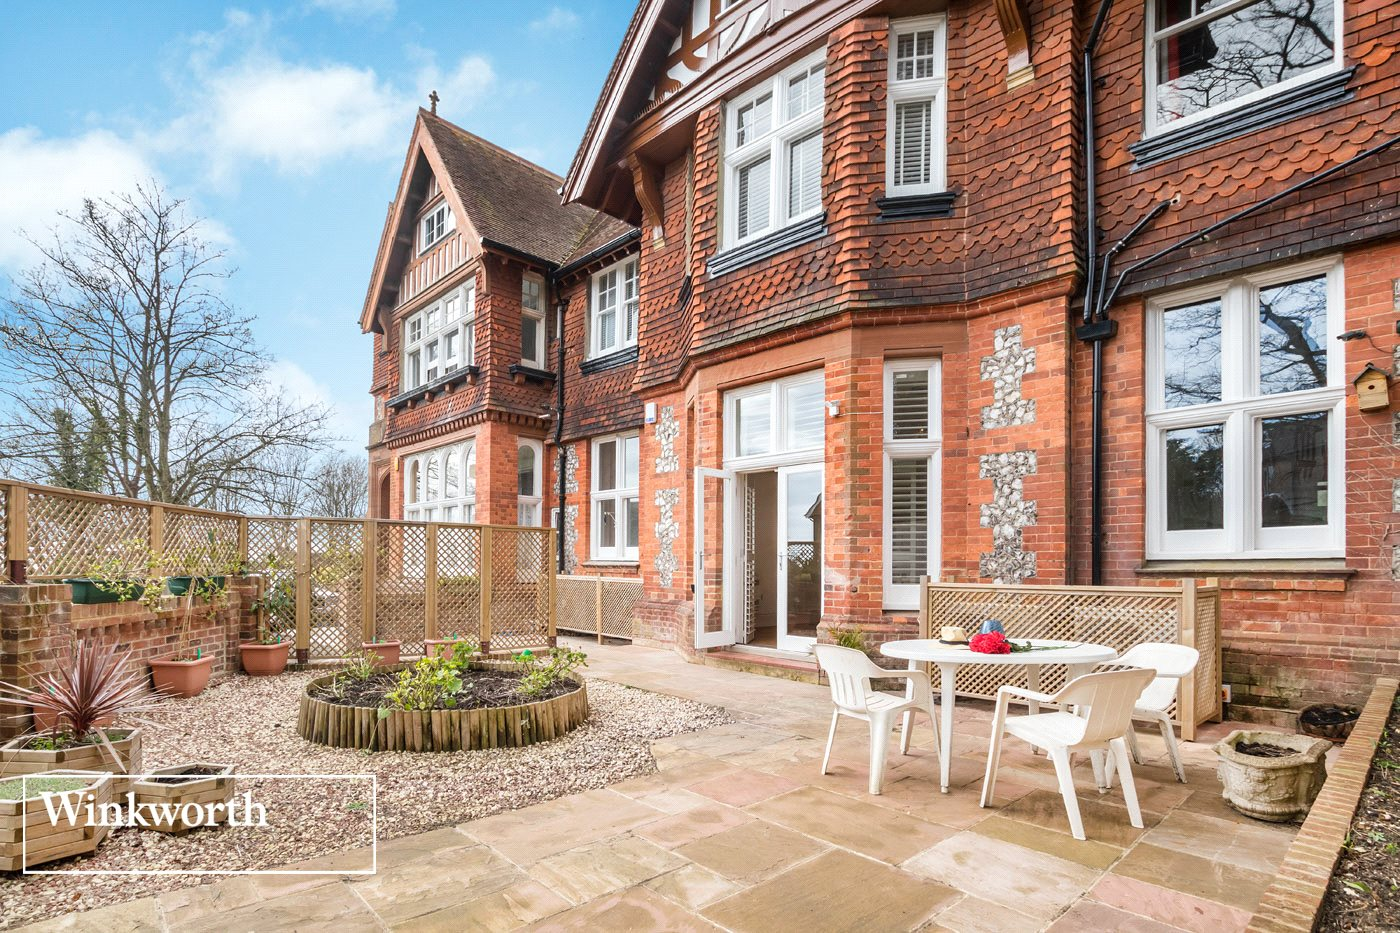 2 Bedrooms Flat for sale in Barrowfield Lodge, Barrowfield Drive, Hove, East Sussex, BN3